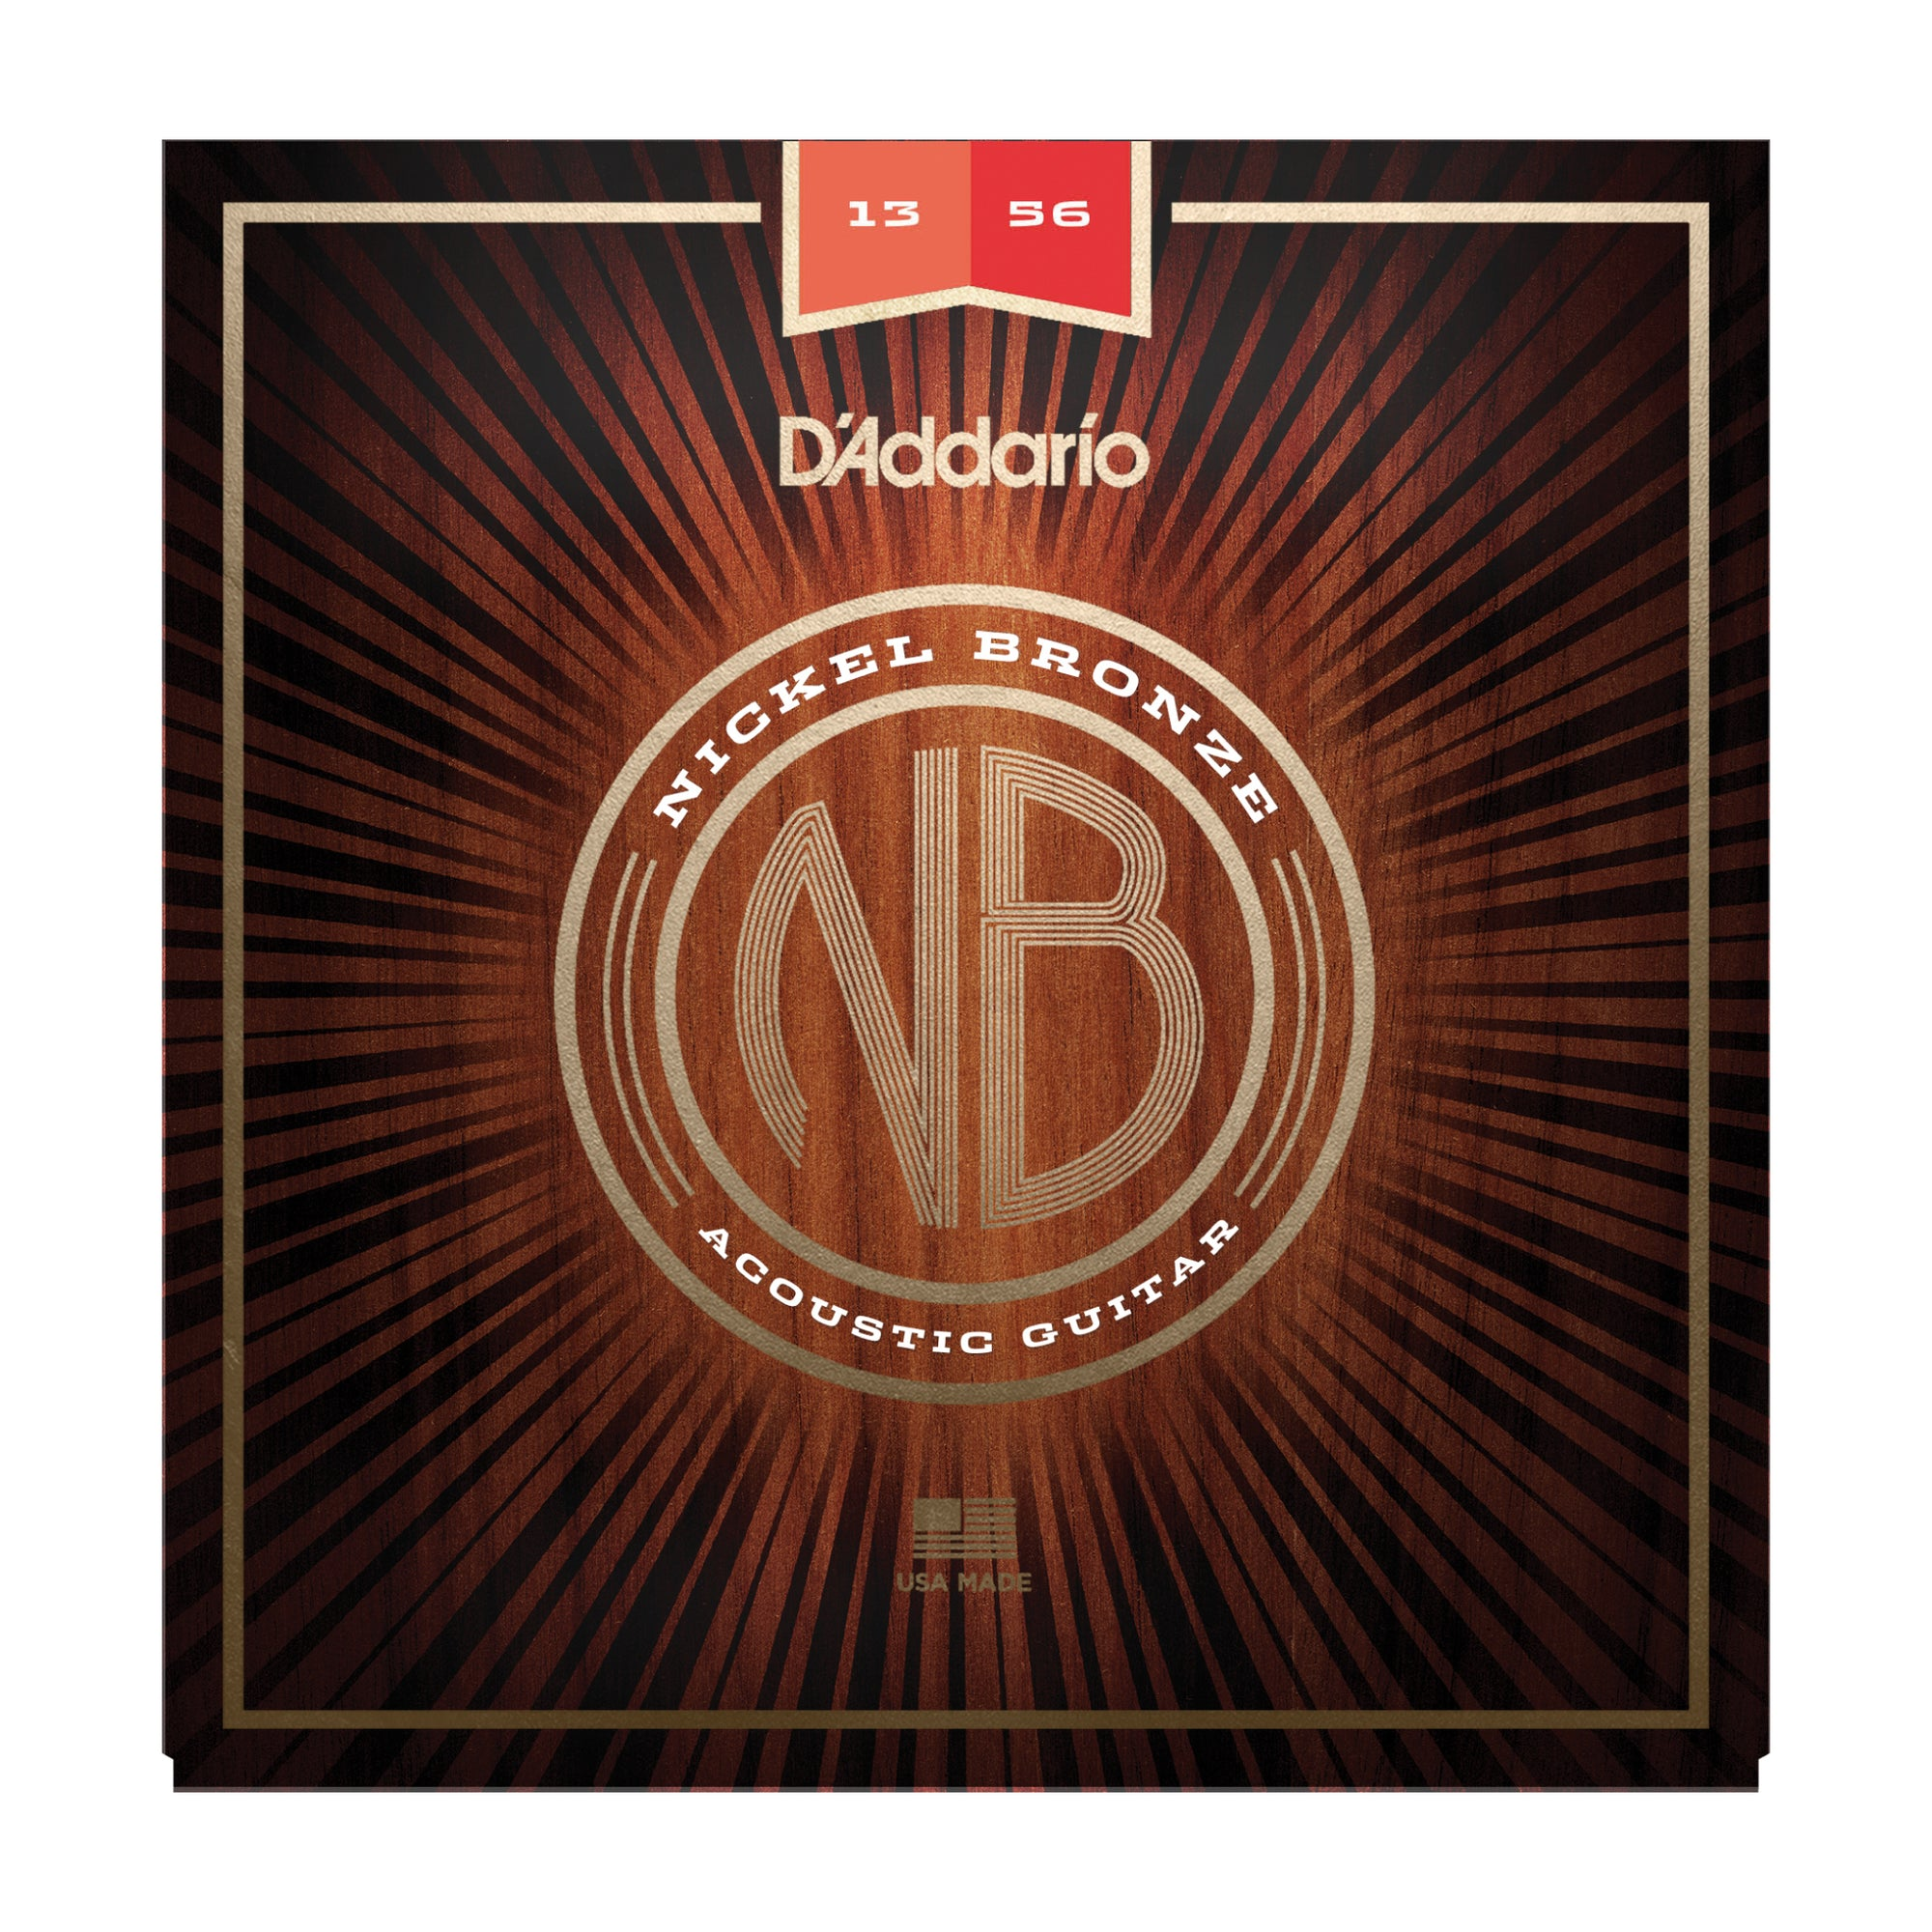 D'Addario NB1356 Nickel Bronze Acoustic Guitar Strings, Medium, 13-56 - Tarpley Music Company, Inc.